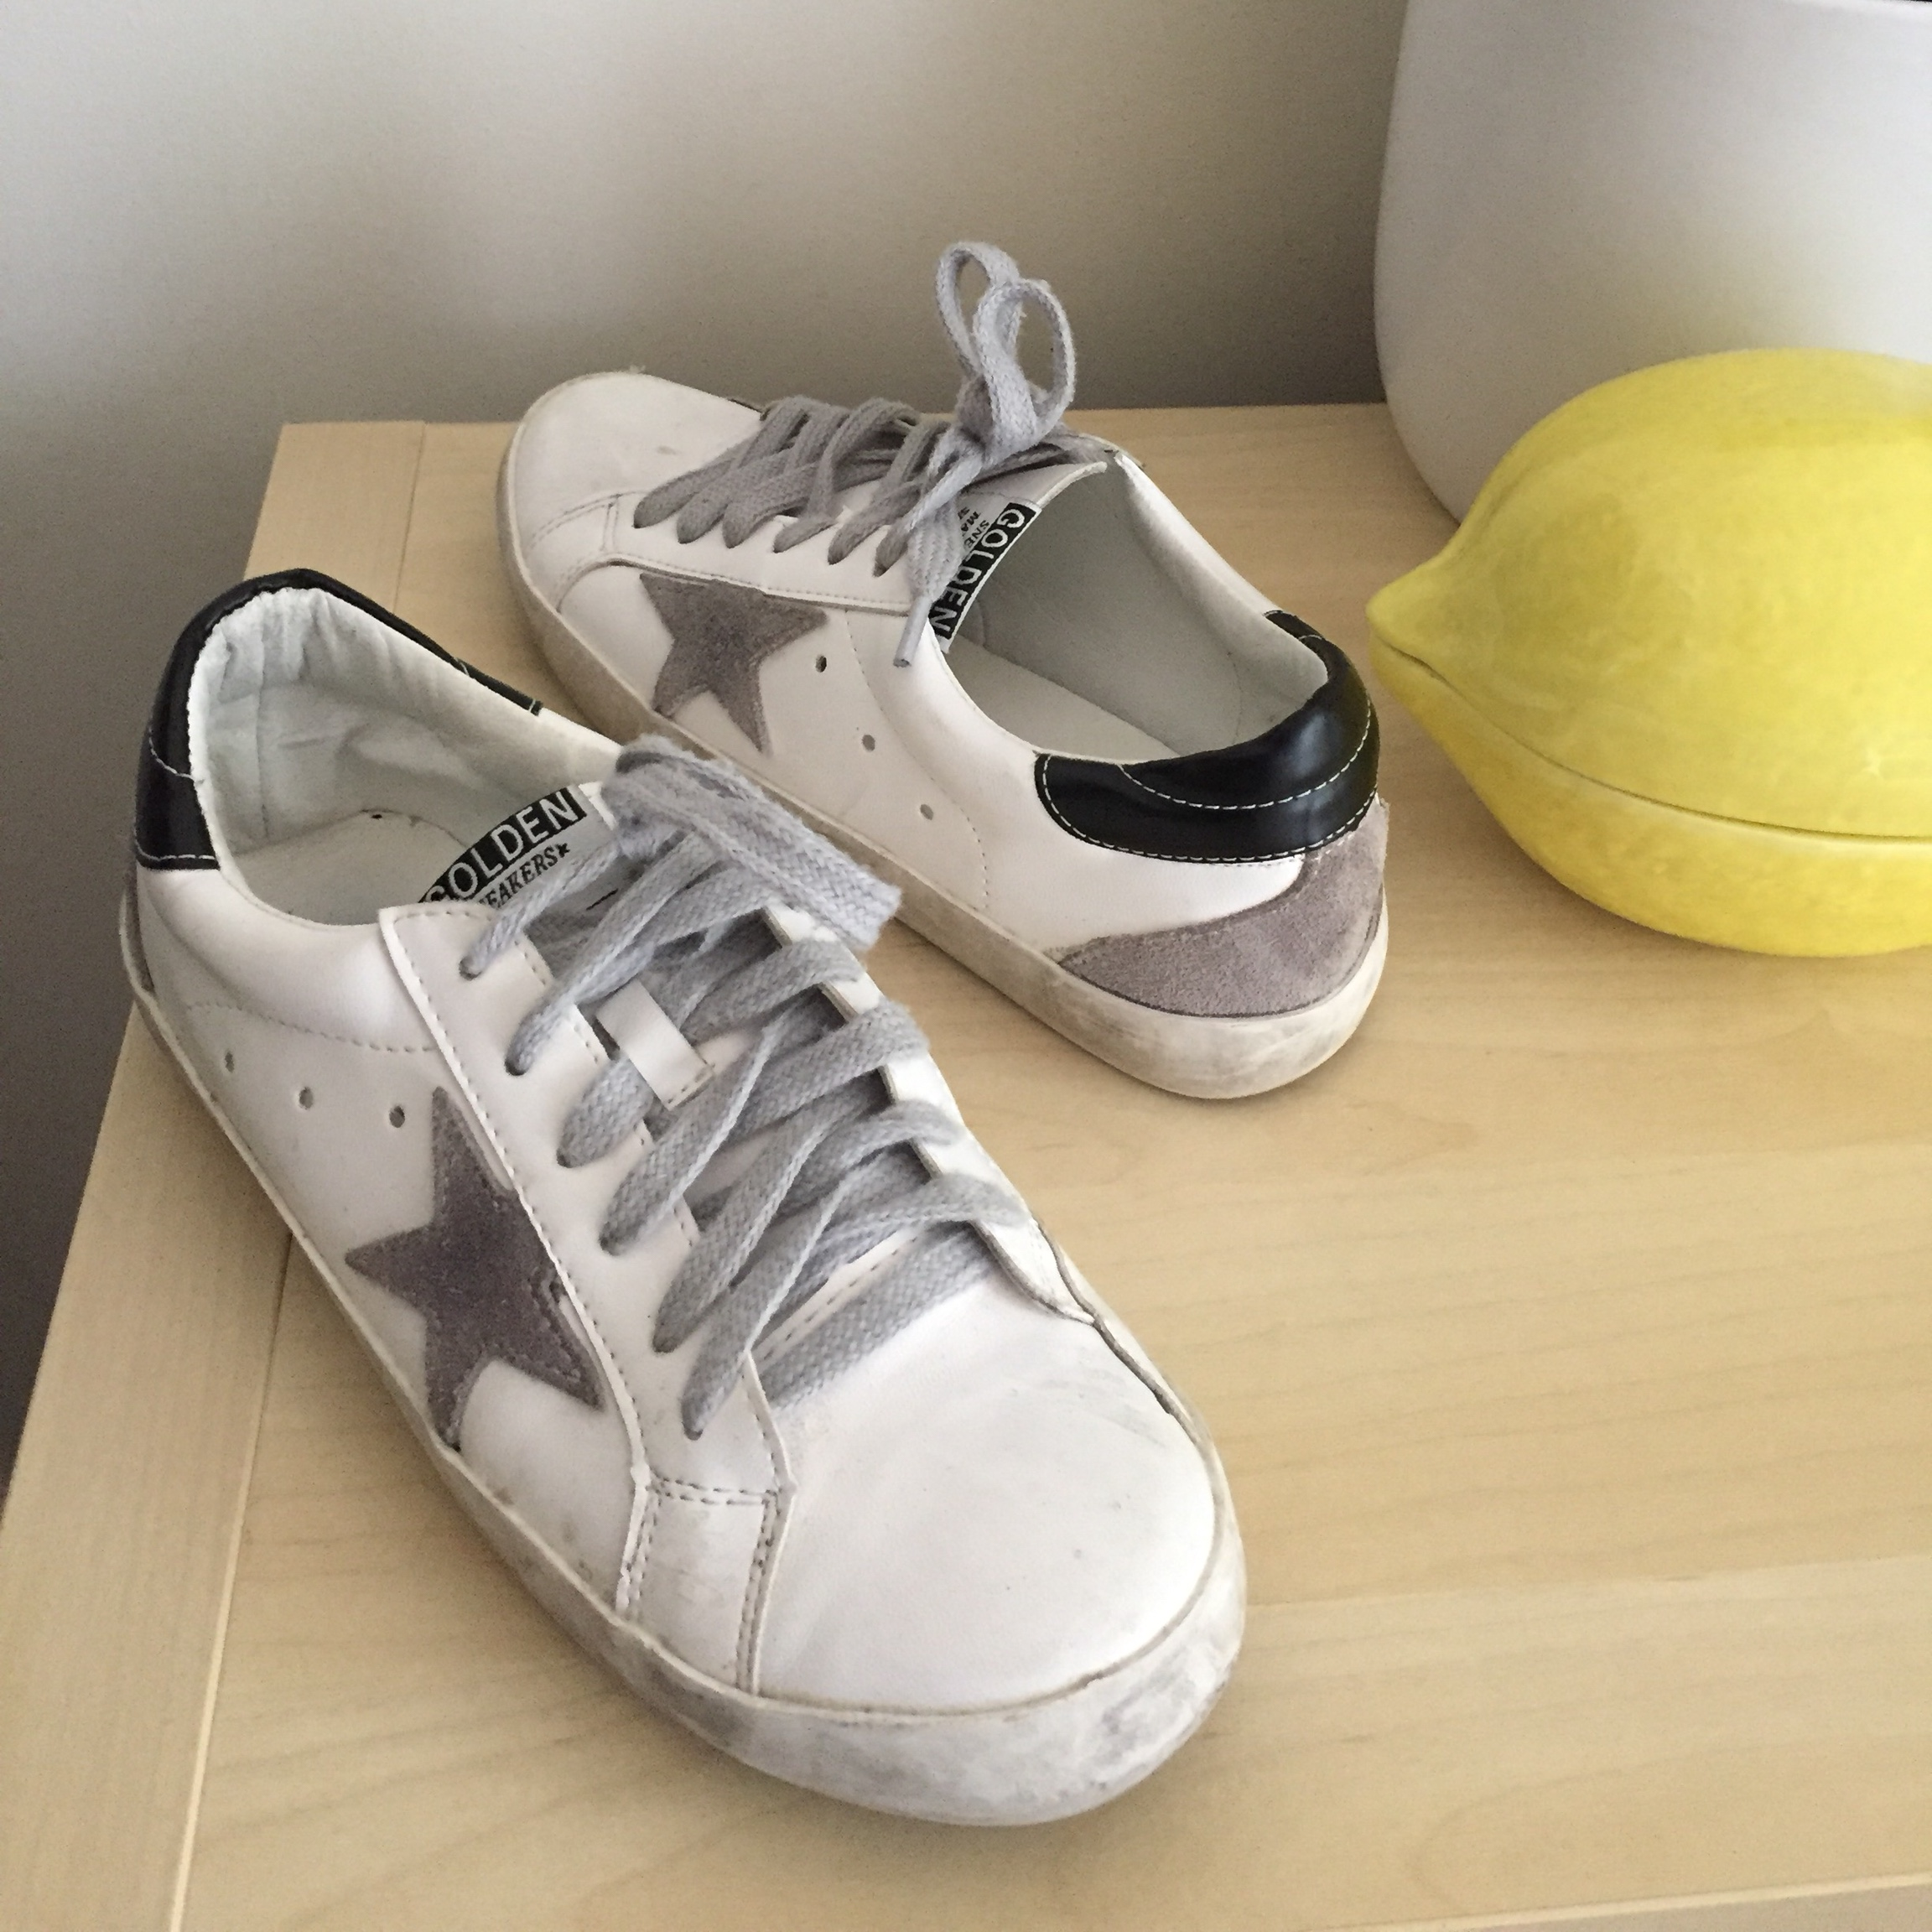 Well made fake golden goose sneakers